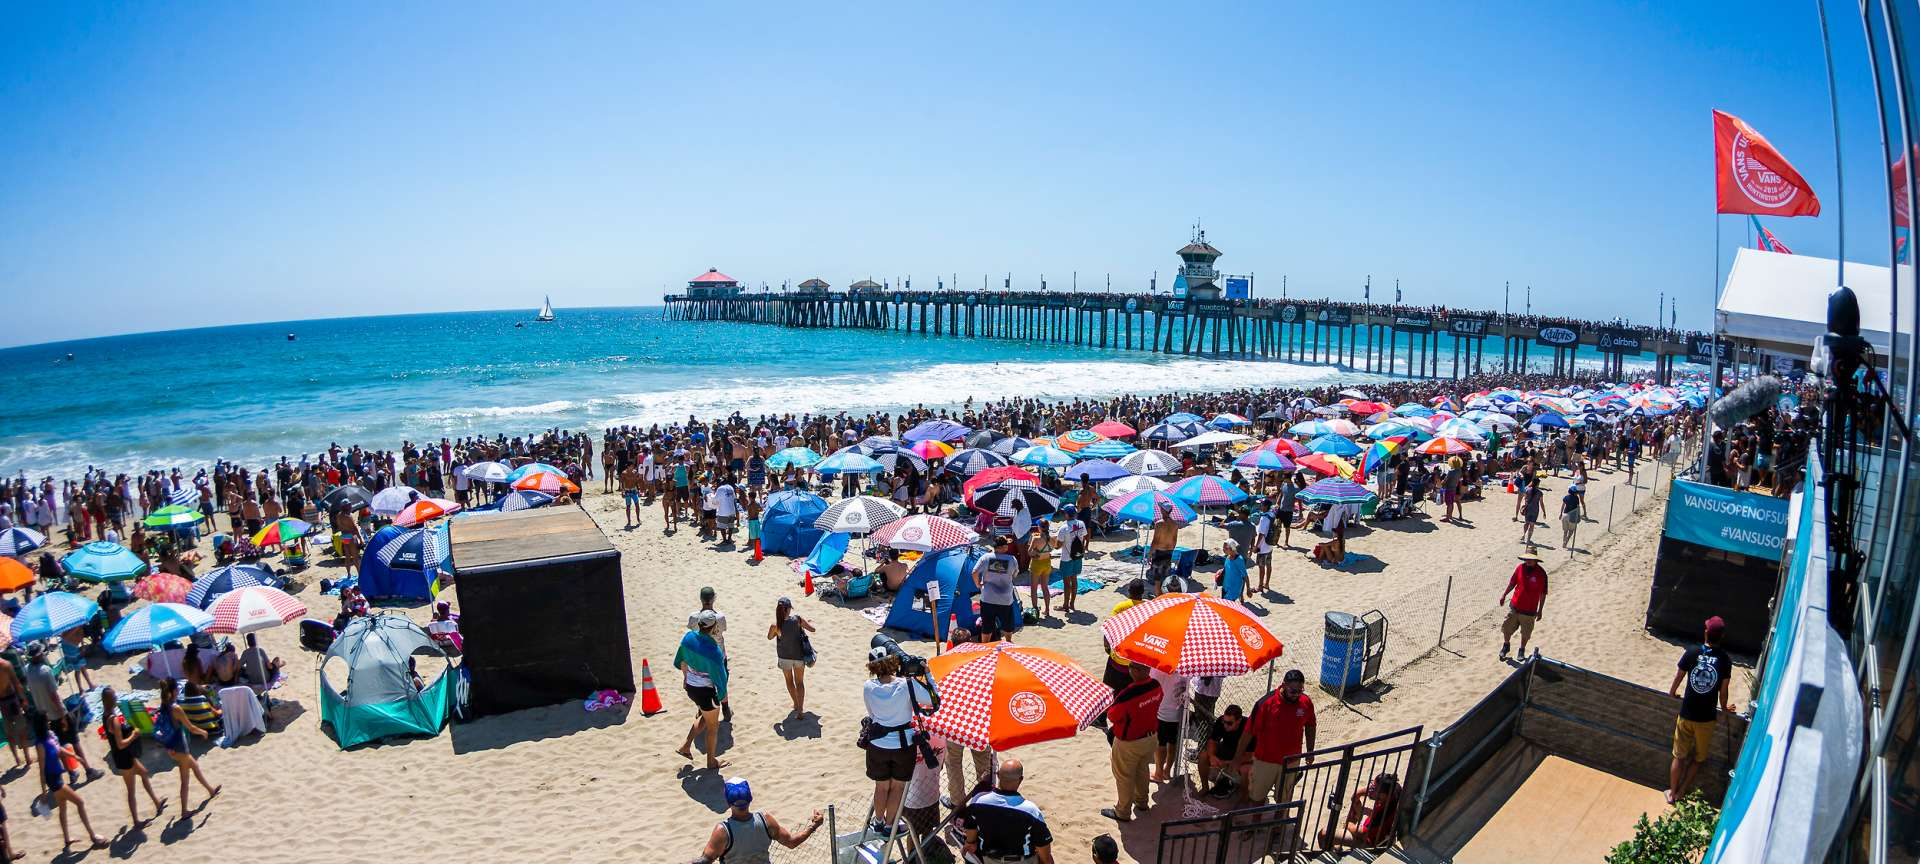 US Open of Surfing in Huntington Beach | July 27, 2019